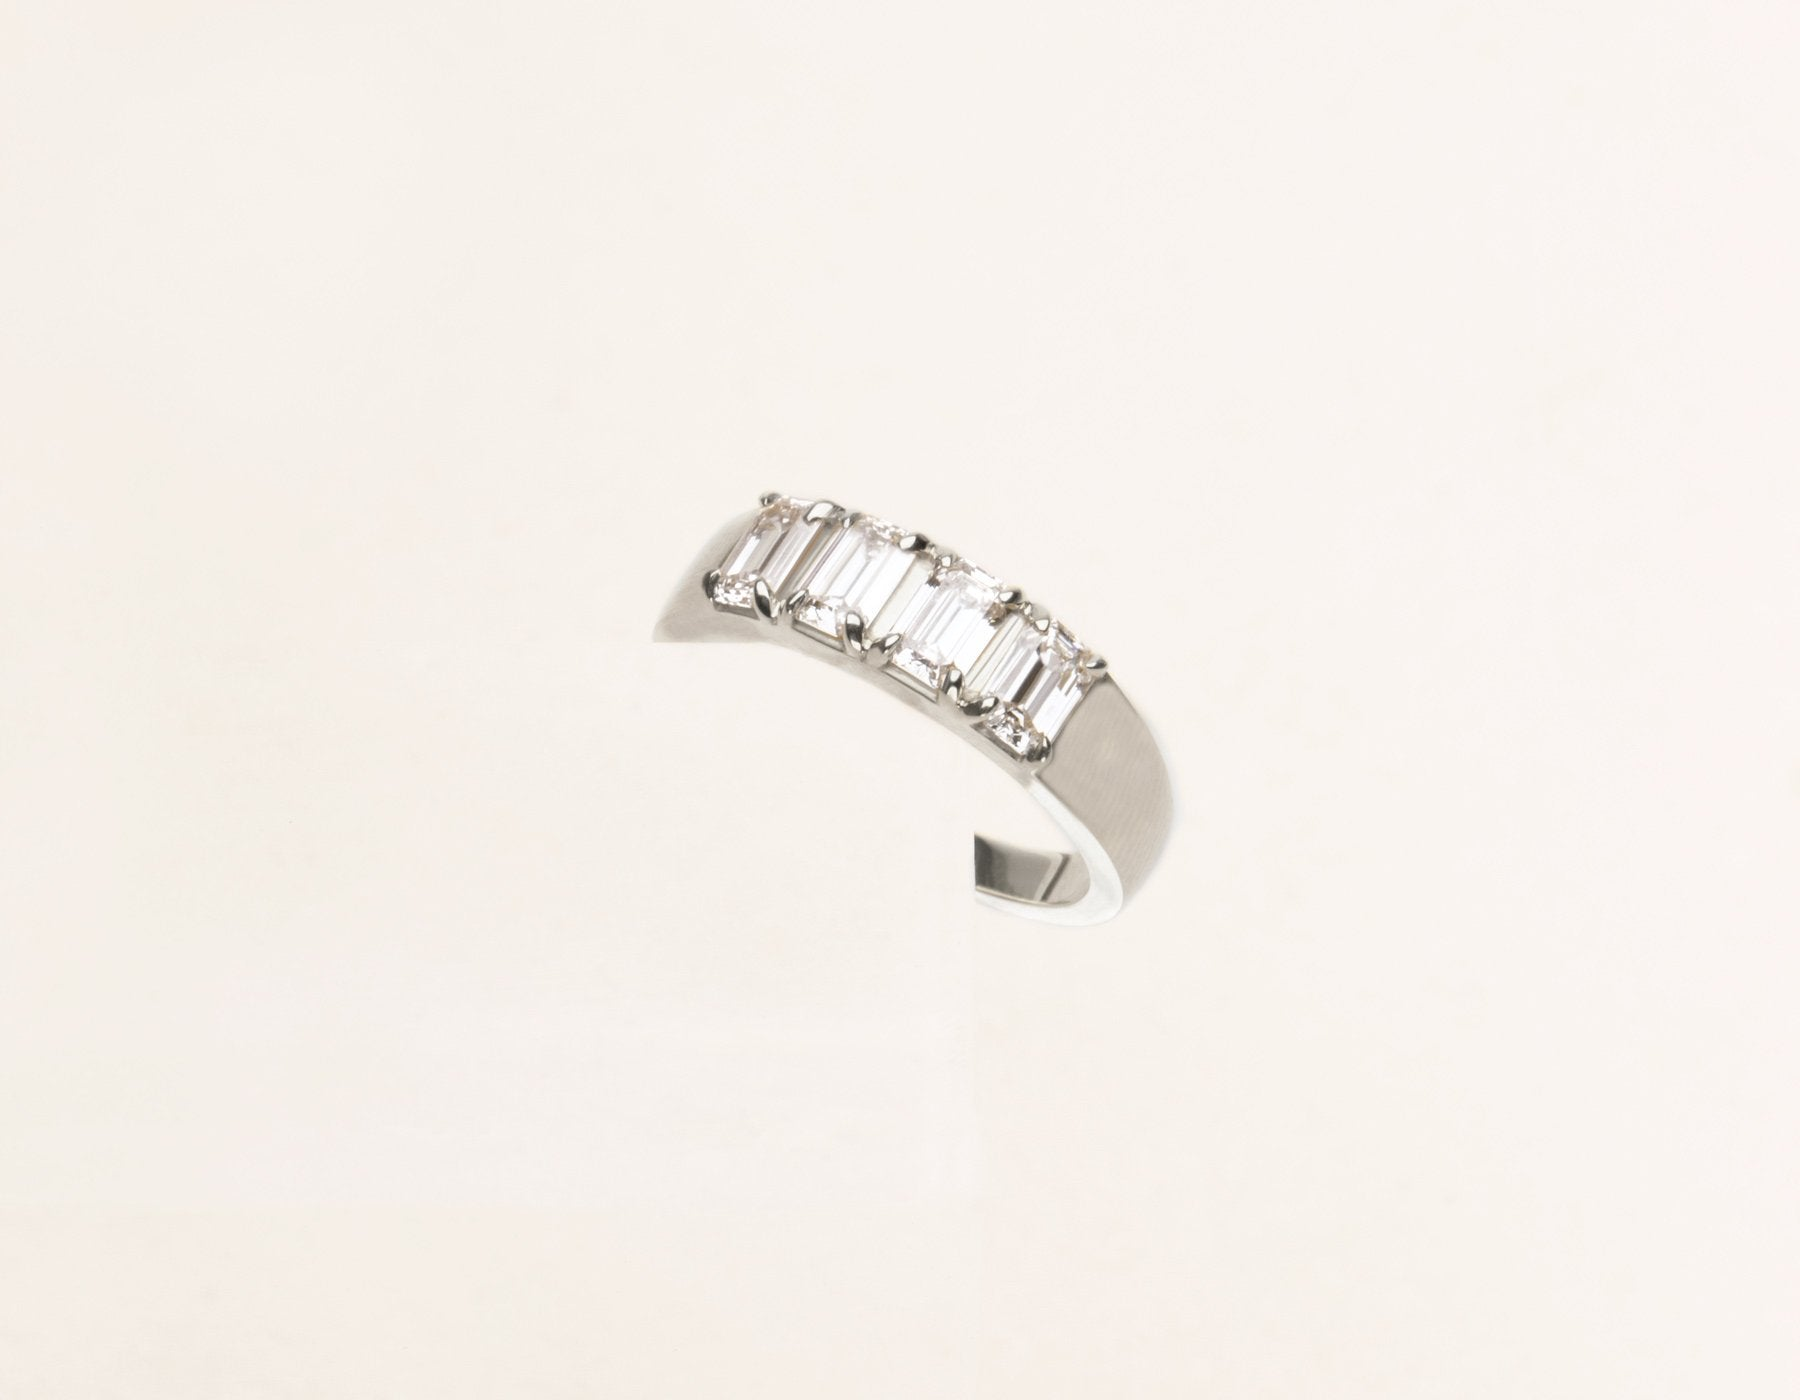 Classic minimalist 14k solid gold Emerald cut Diamond Tetrad Band by Vrai & Oro sustainable jewelry, 14K White Gold